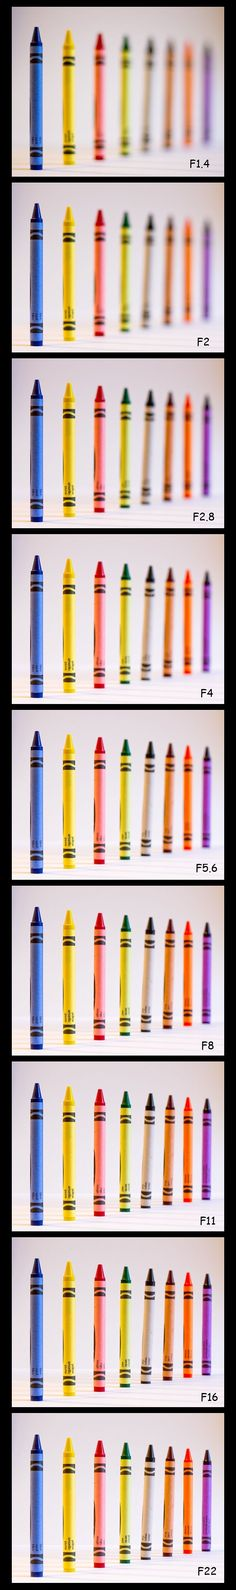 The different apertures are clearly shown in this collection of pictures